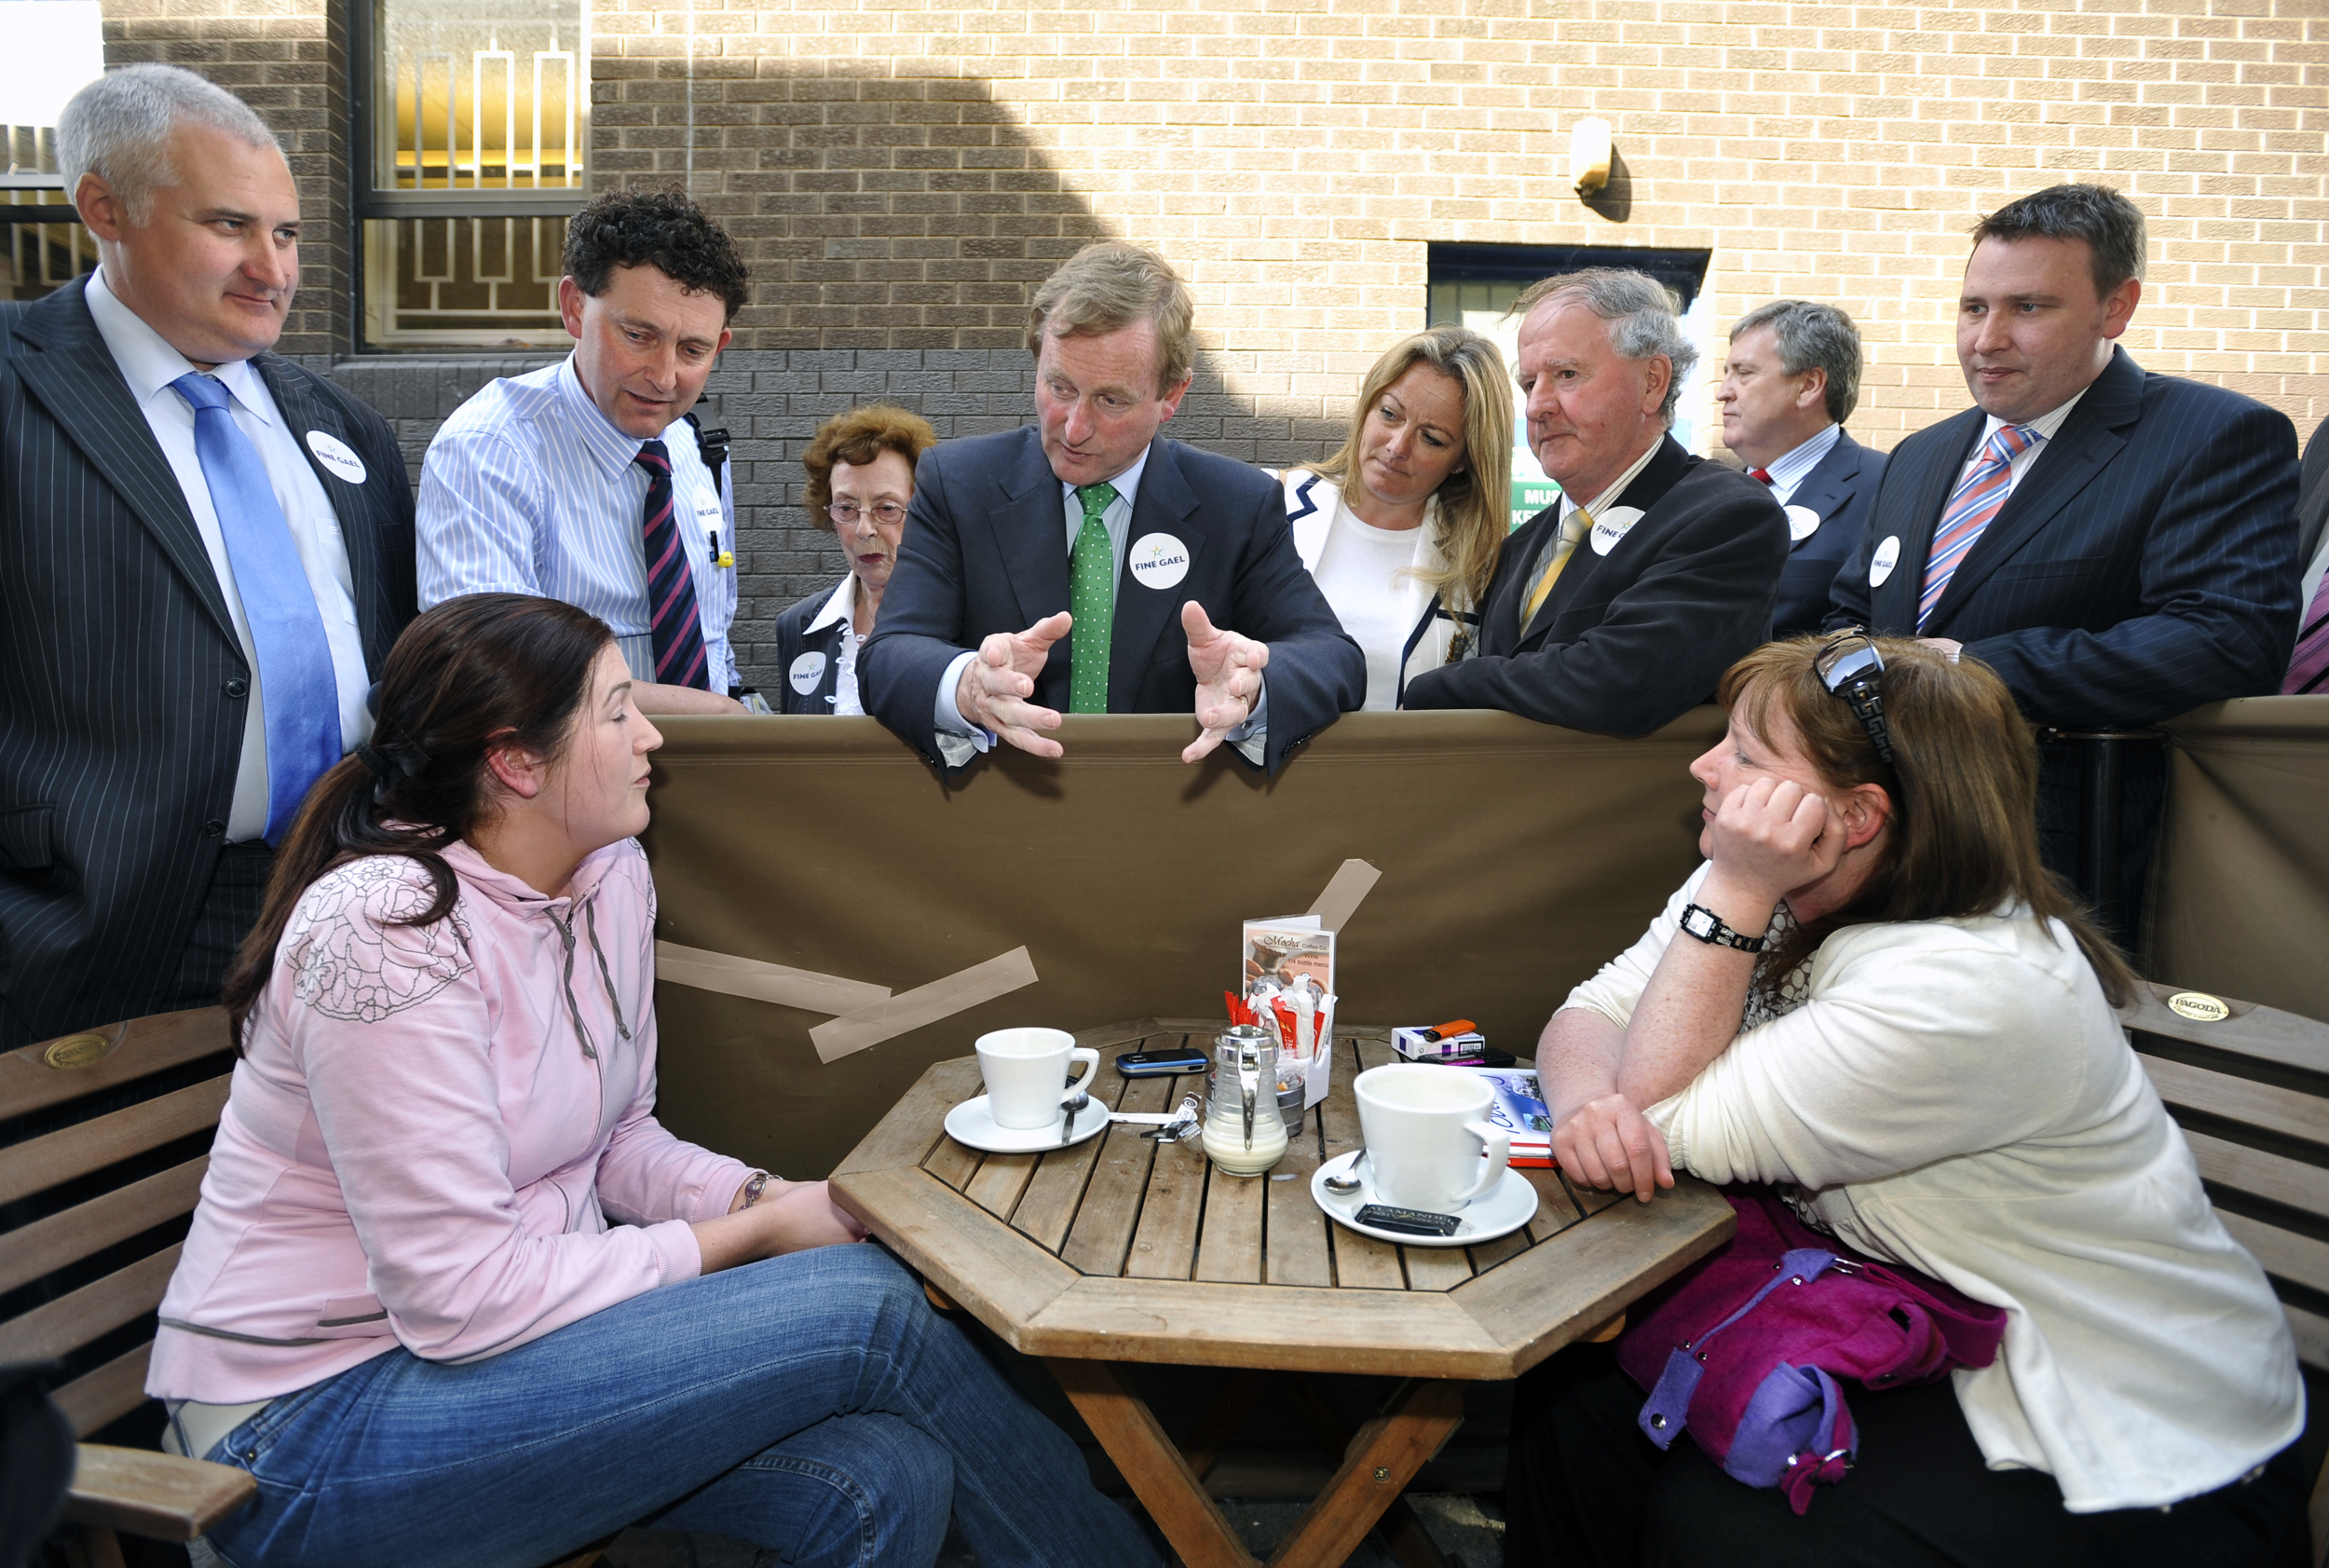 Fine Gael leader Enda Kenny engages with some Al fresco diners during his visit to Ennis. Looking on are candidates Roger Fox, Johnny Flynn, Mary Coote Ryan, Mary Howard, Gabriel Keating and TD's Pat Breen and Joe Carey.